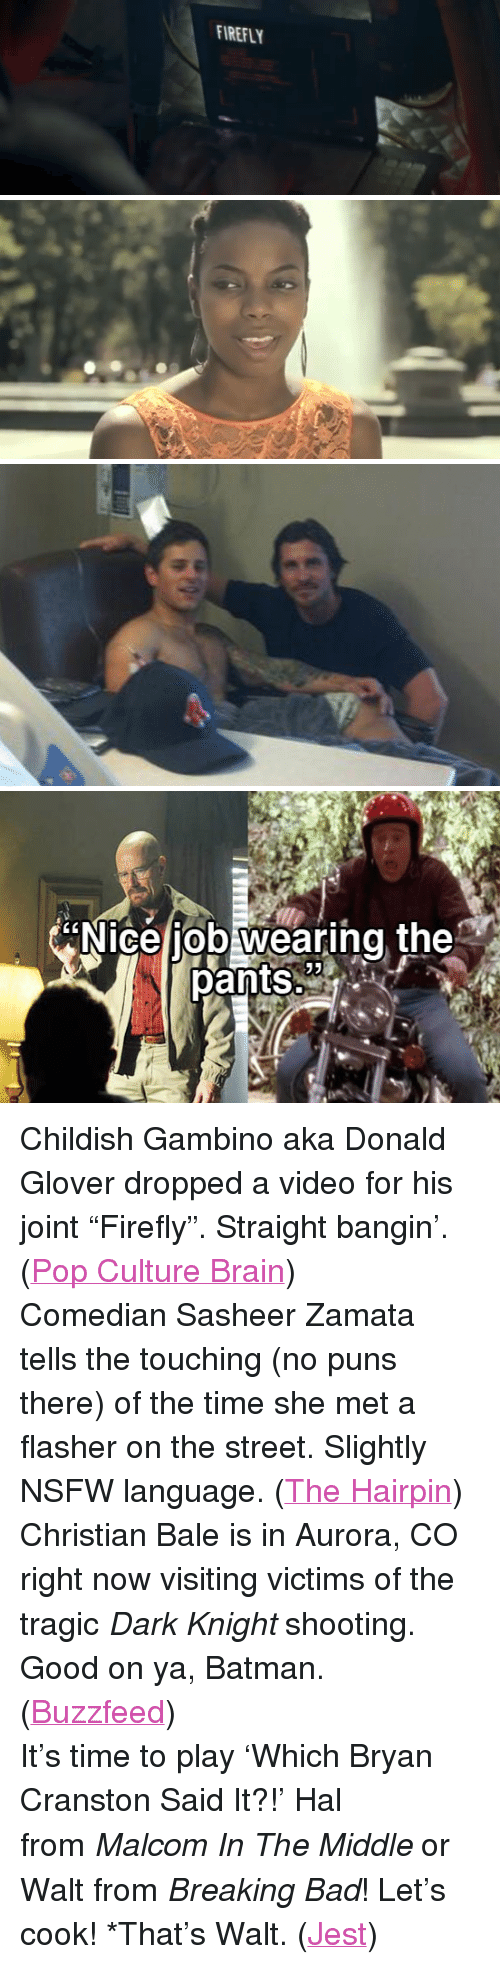 "puns: FIREFLY   N  the  ice job wearing  pants 2 <p>Childish Gambino aka Donald Glover dropped a video for his joint &ldquo;Firefly&rdquo;. Straight bangin&rsquo;. (<a href=""http://popculturebrain.com/post/27916531374/new-music-video-childish-gambino-fire-fly"" target=""_blank"">Pop Culture Brain</a>)</p> <p>Comedian Sasheer Zamata tells the touching (no puns there) of the time she met a flasher on the street. Slightly NSFW language. (<a href=""http://thehairpin.com/2012/07/five-minute-entertainment-break-sasheer-meets-her-flasher/"" target=""_blank"">The Hairpin</a>)</p> <p>Christian Bale is in Aurora, CO right now visiting victims of the tragic <em>Dark Knight</em> shooting. Good on ya, Batman. (<a href=""http://www.buzzfeed.com/gavon/christian-bale-meets-with-survivors-of-aurora-shoo"" target=""_blank"">Buzzfeed</a>)</p> <p>It&rsquo;s time to play &lsquo;Which Bryan Cranston Said It?!&rsquo; Hal from <em>Malcom In The Middle</em> or Walt from <em>Breaking Bad</em>! Let&rsquo;s cook! *That&rsquo;s Walt. (<a href=""http://www.jest.com/article/184531/bryan-cranston-walter-white-hal-quotes"" target=""_blank"">Jest</a>)</p>"